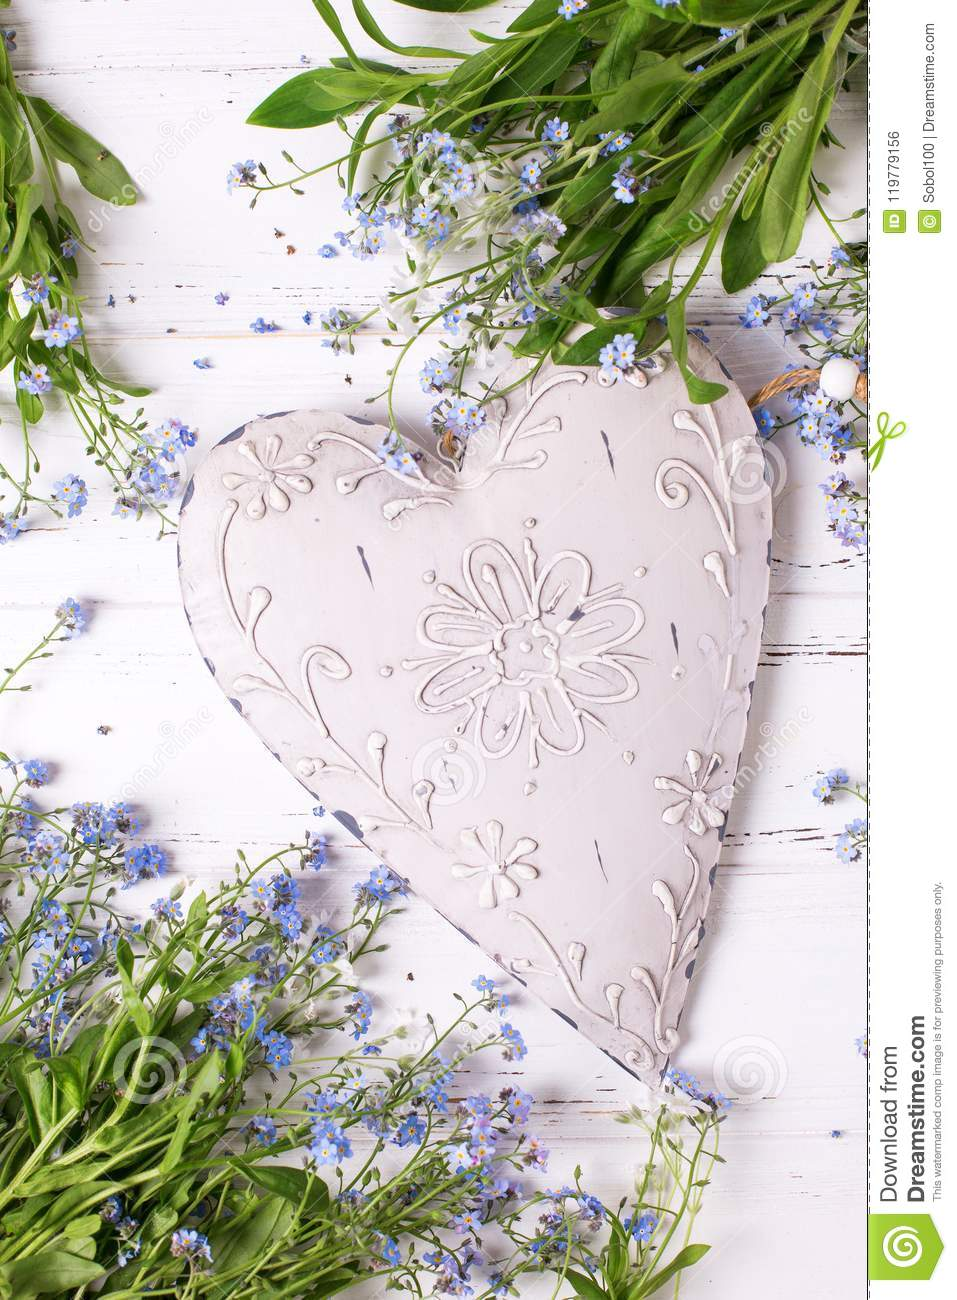 Big Vintage Heart And Frame From Blue Forget-me-nots Or Myoso Stock ...